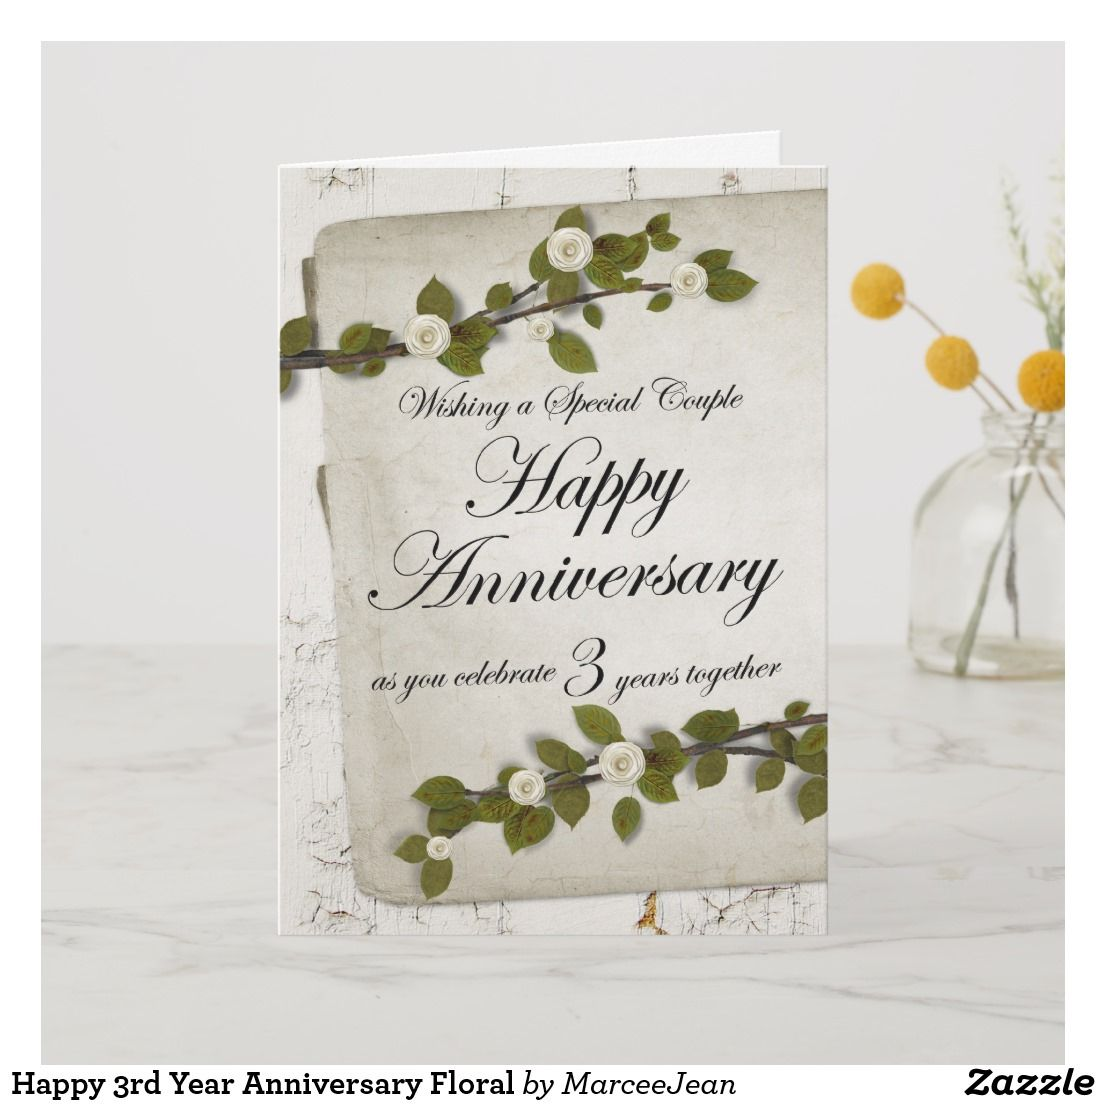 Happy 3rd year anniversary floral card